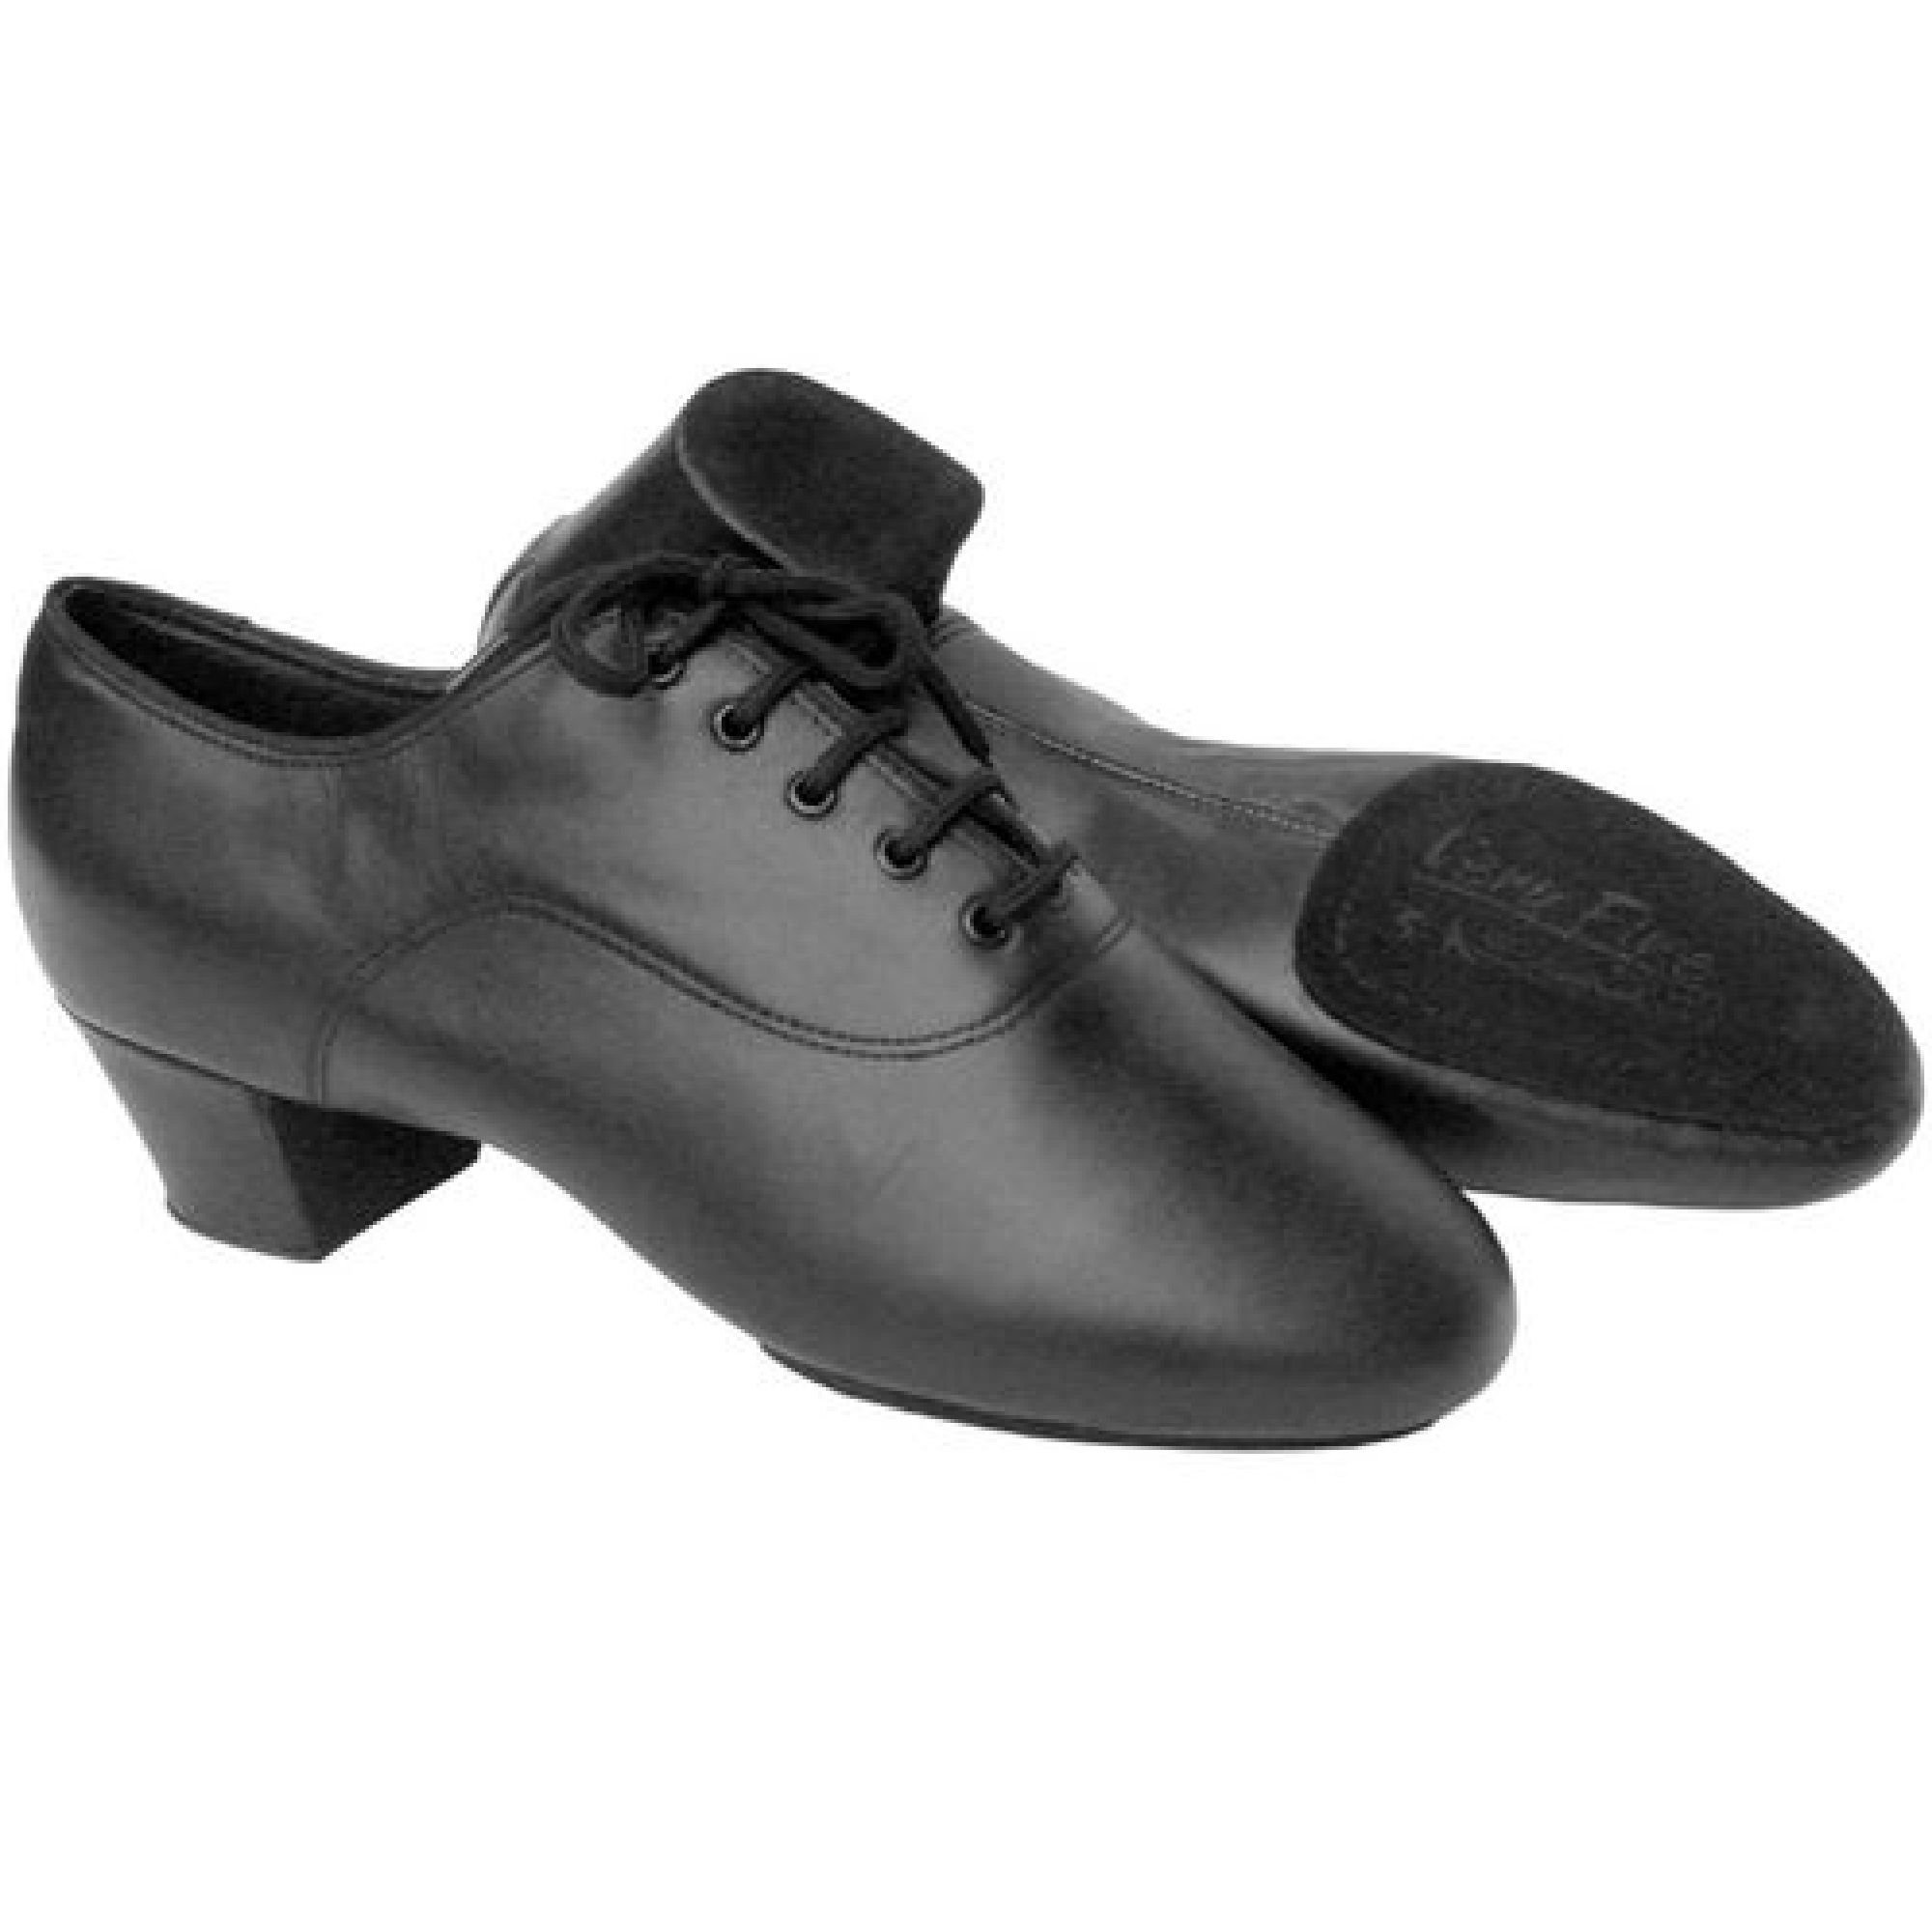 Very Fine Dance Shoes S417 Black Leather (Competition Grade) Size 10US